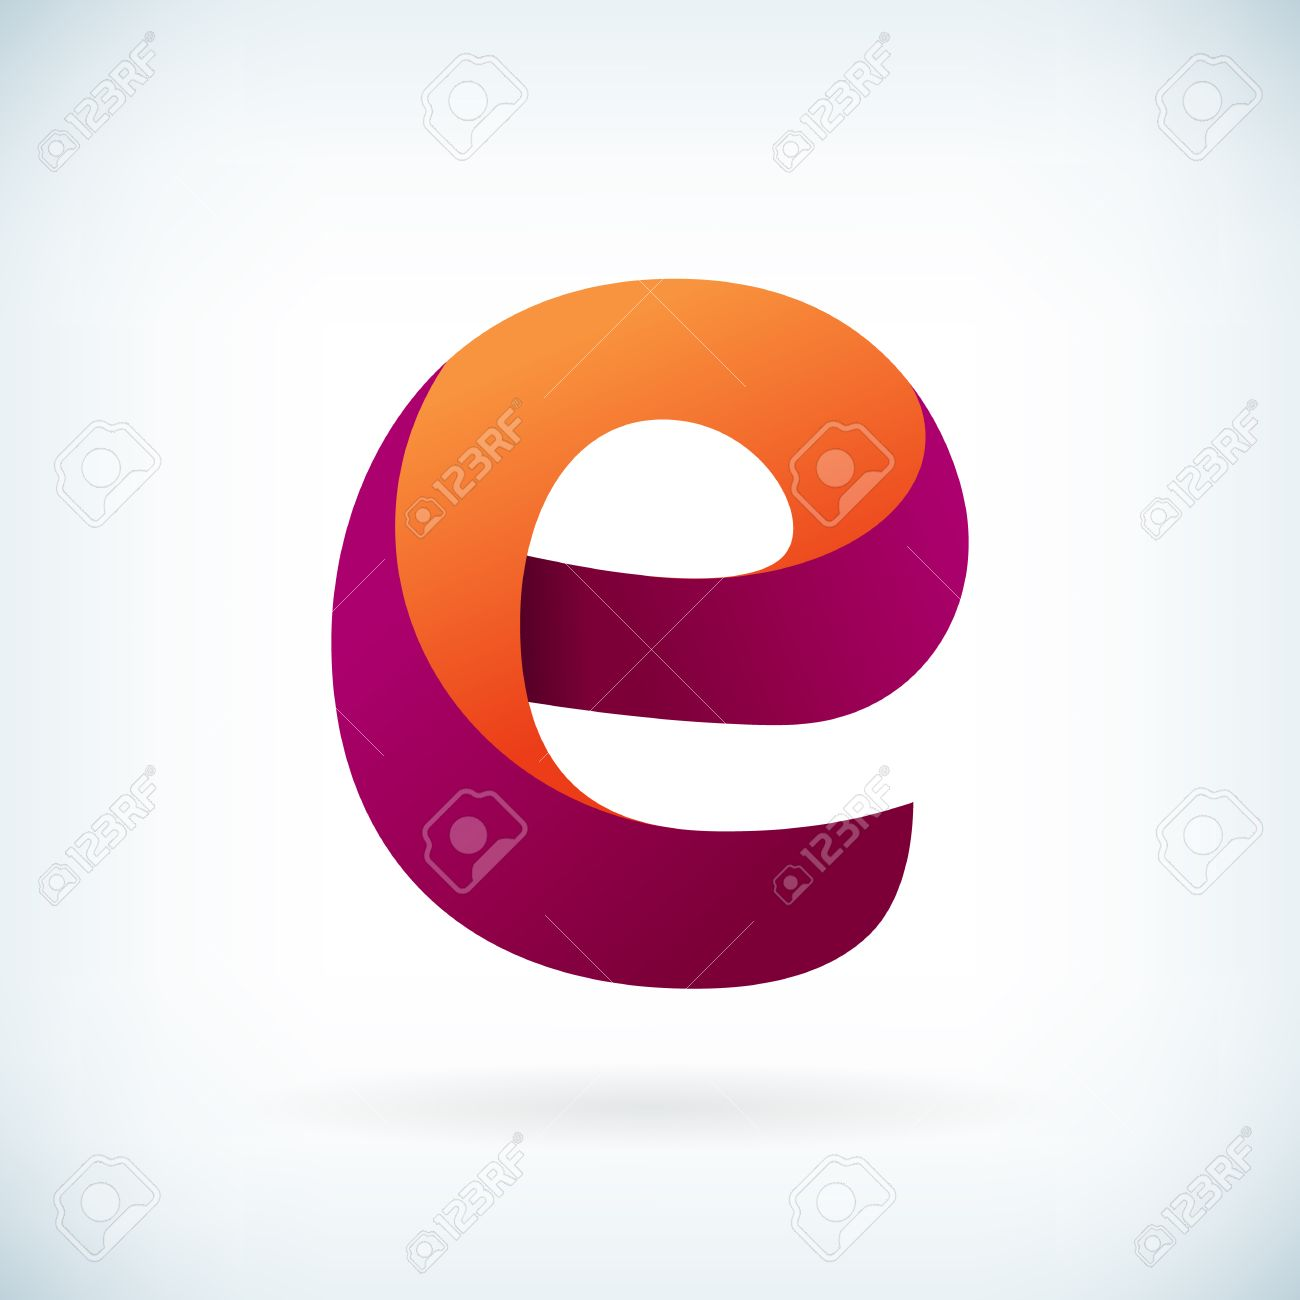 modern twisted letter e icon design element template royalty free